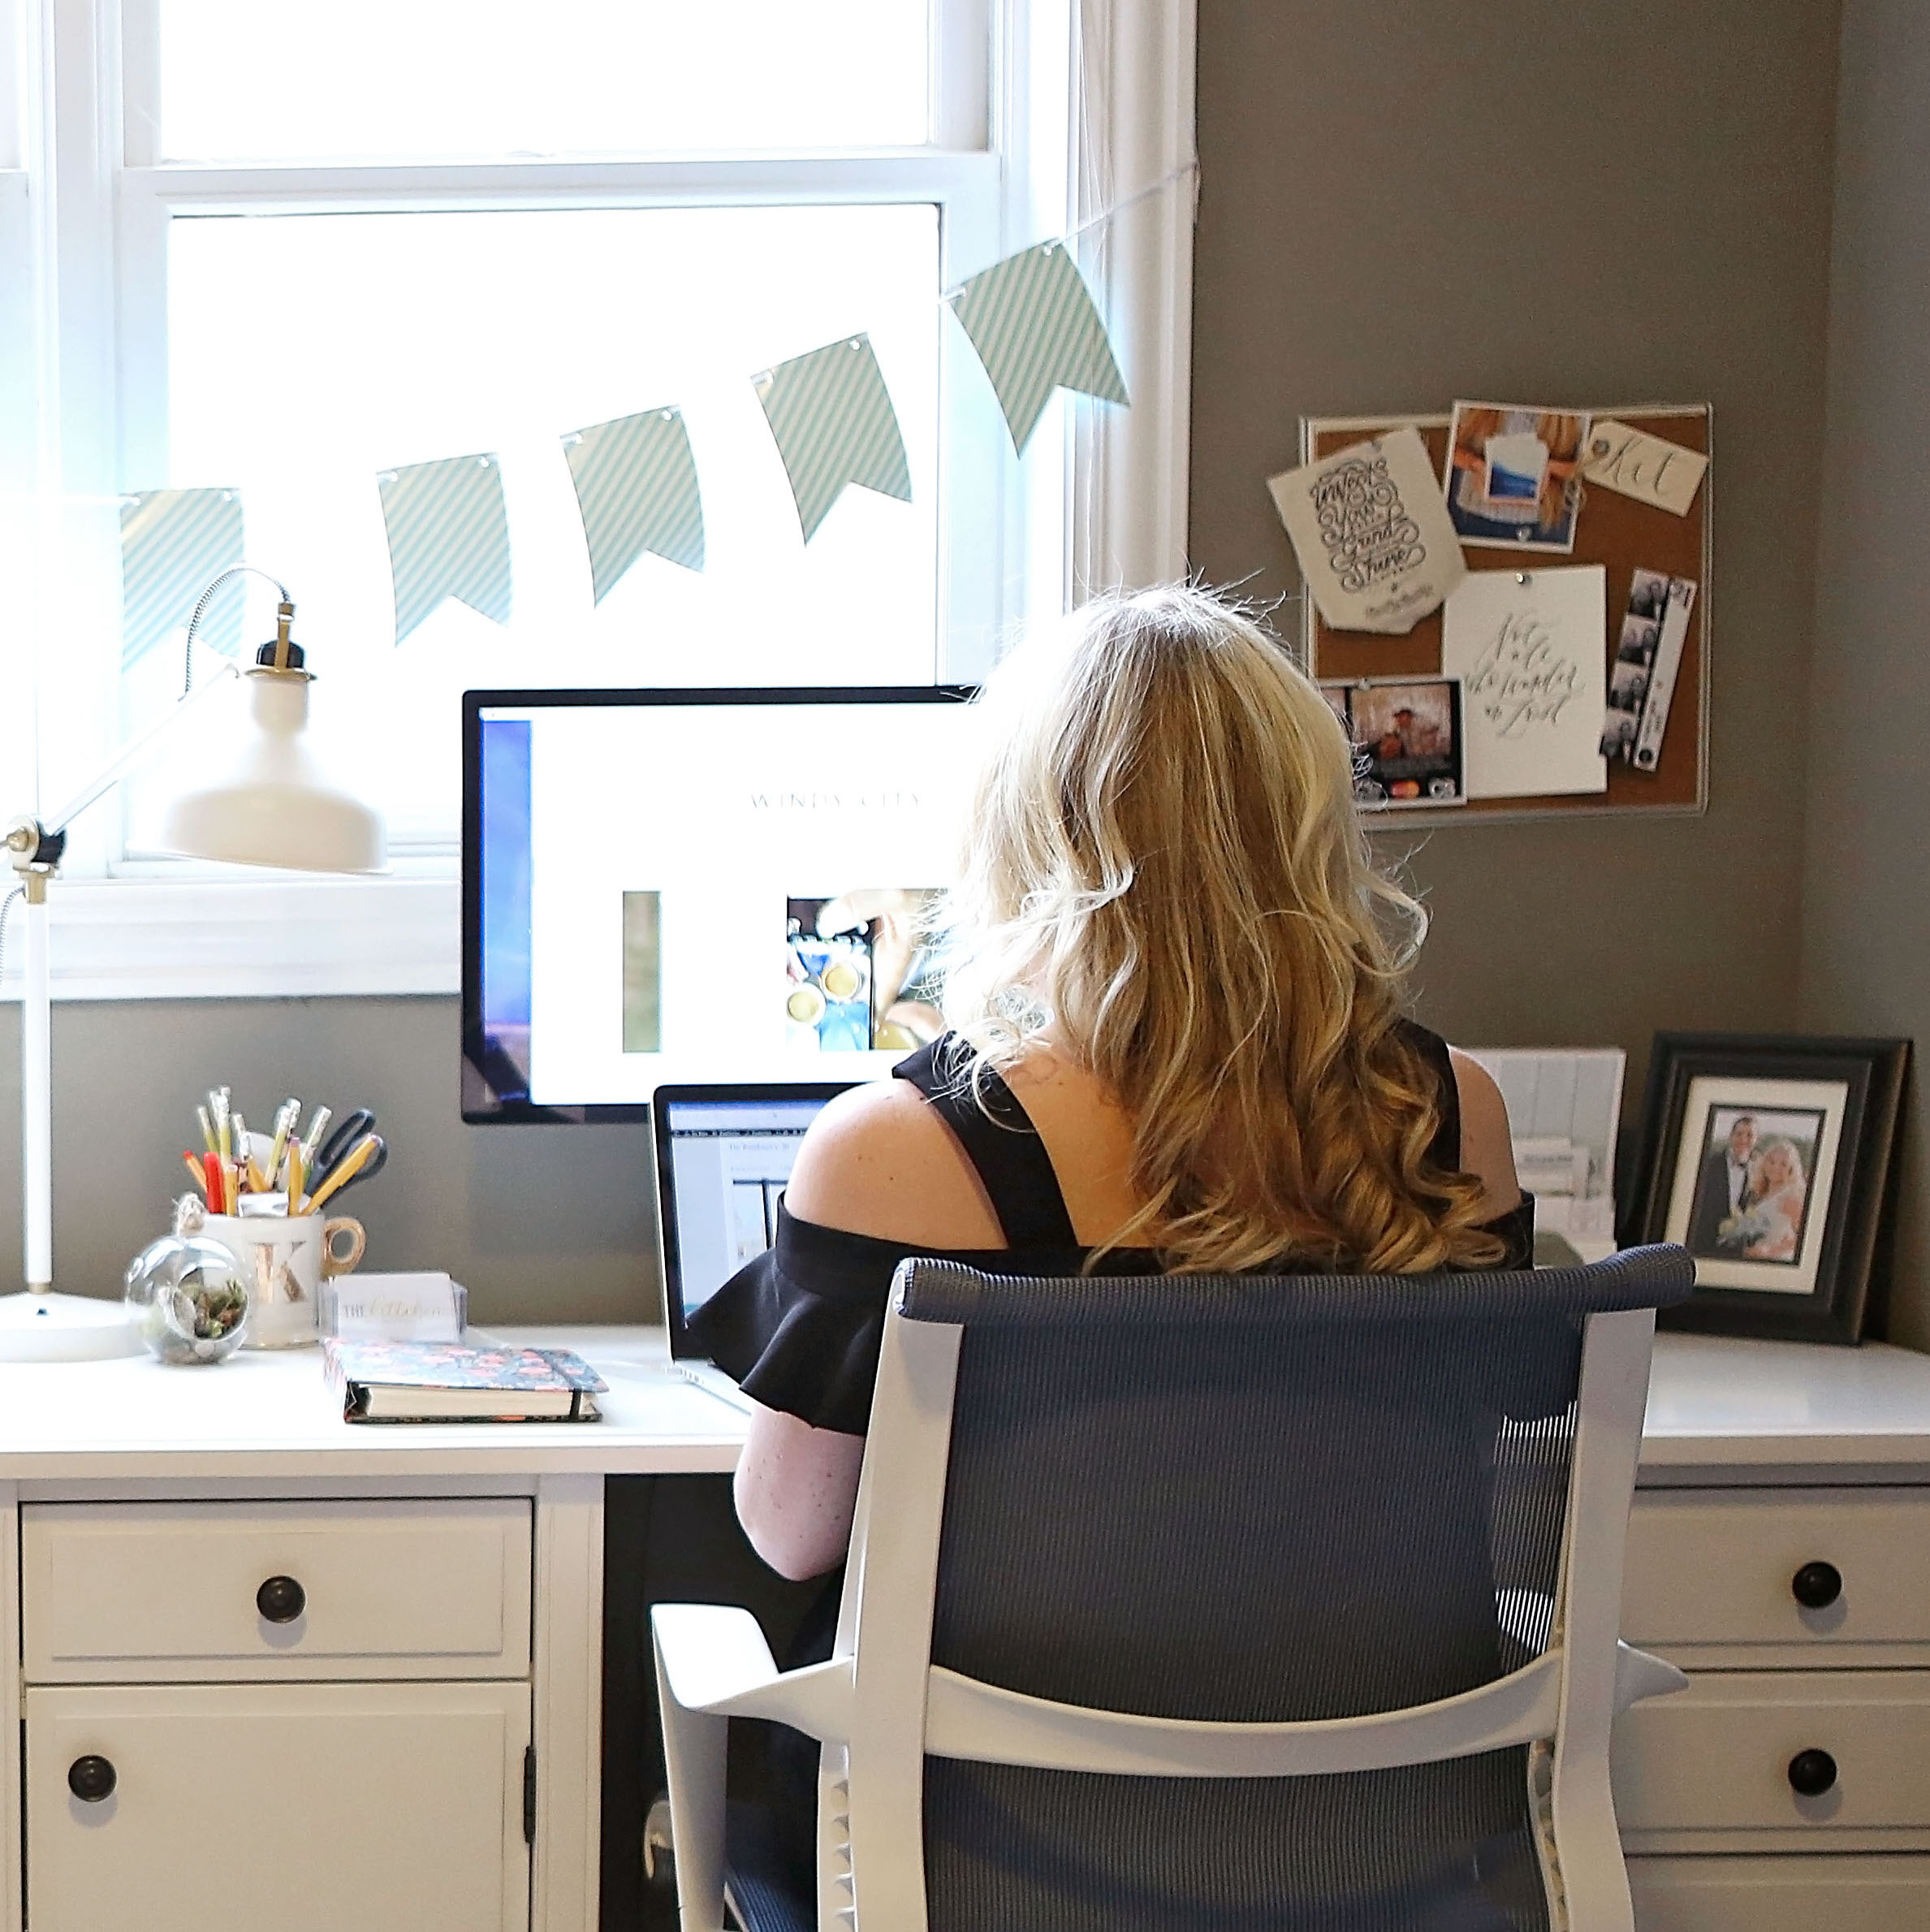 How To Create An Invoice For Sponsored Posts - How to create an invoice in word furniture stores online